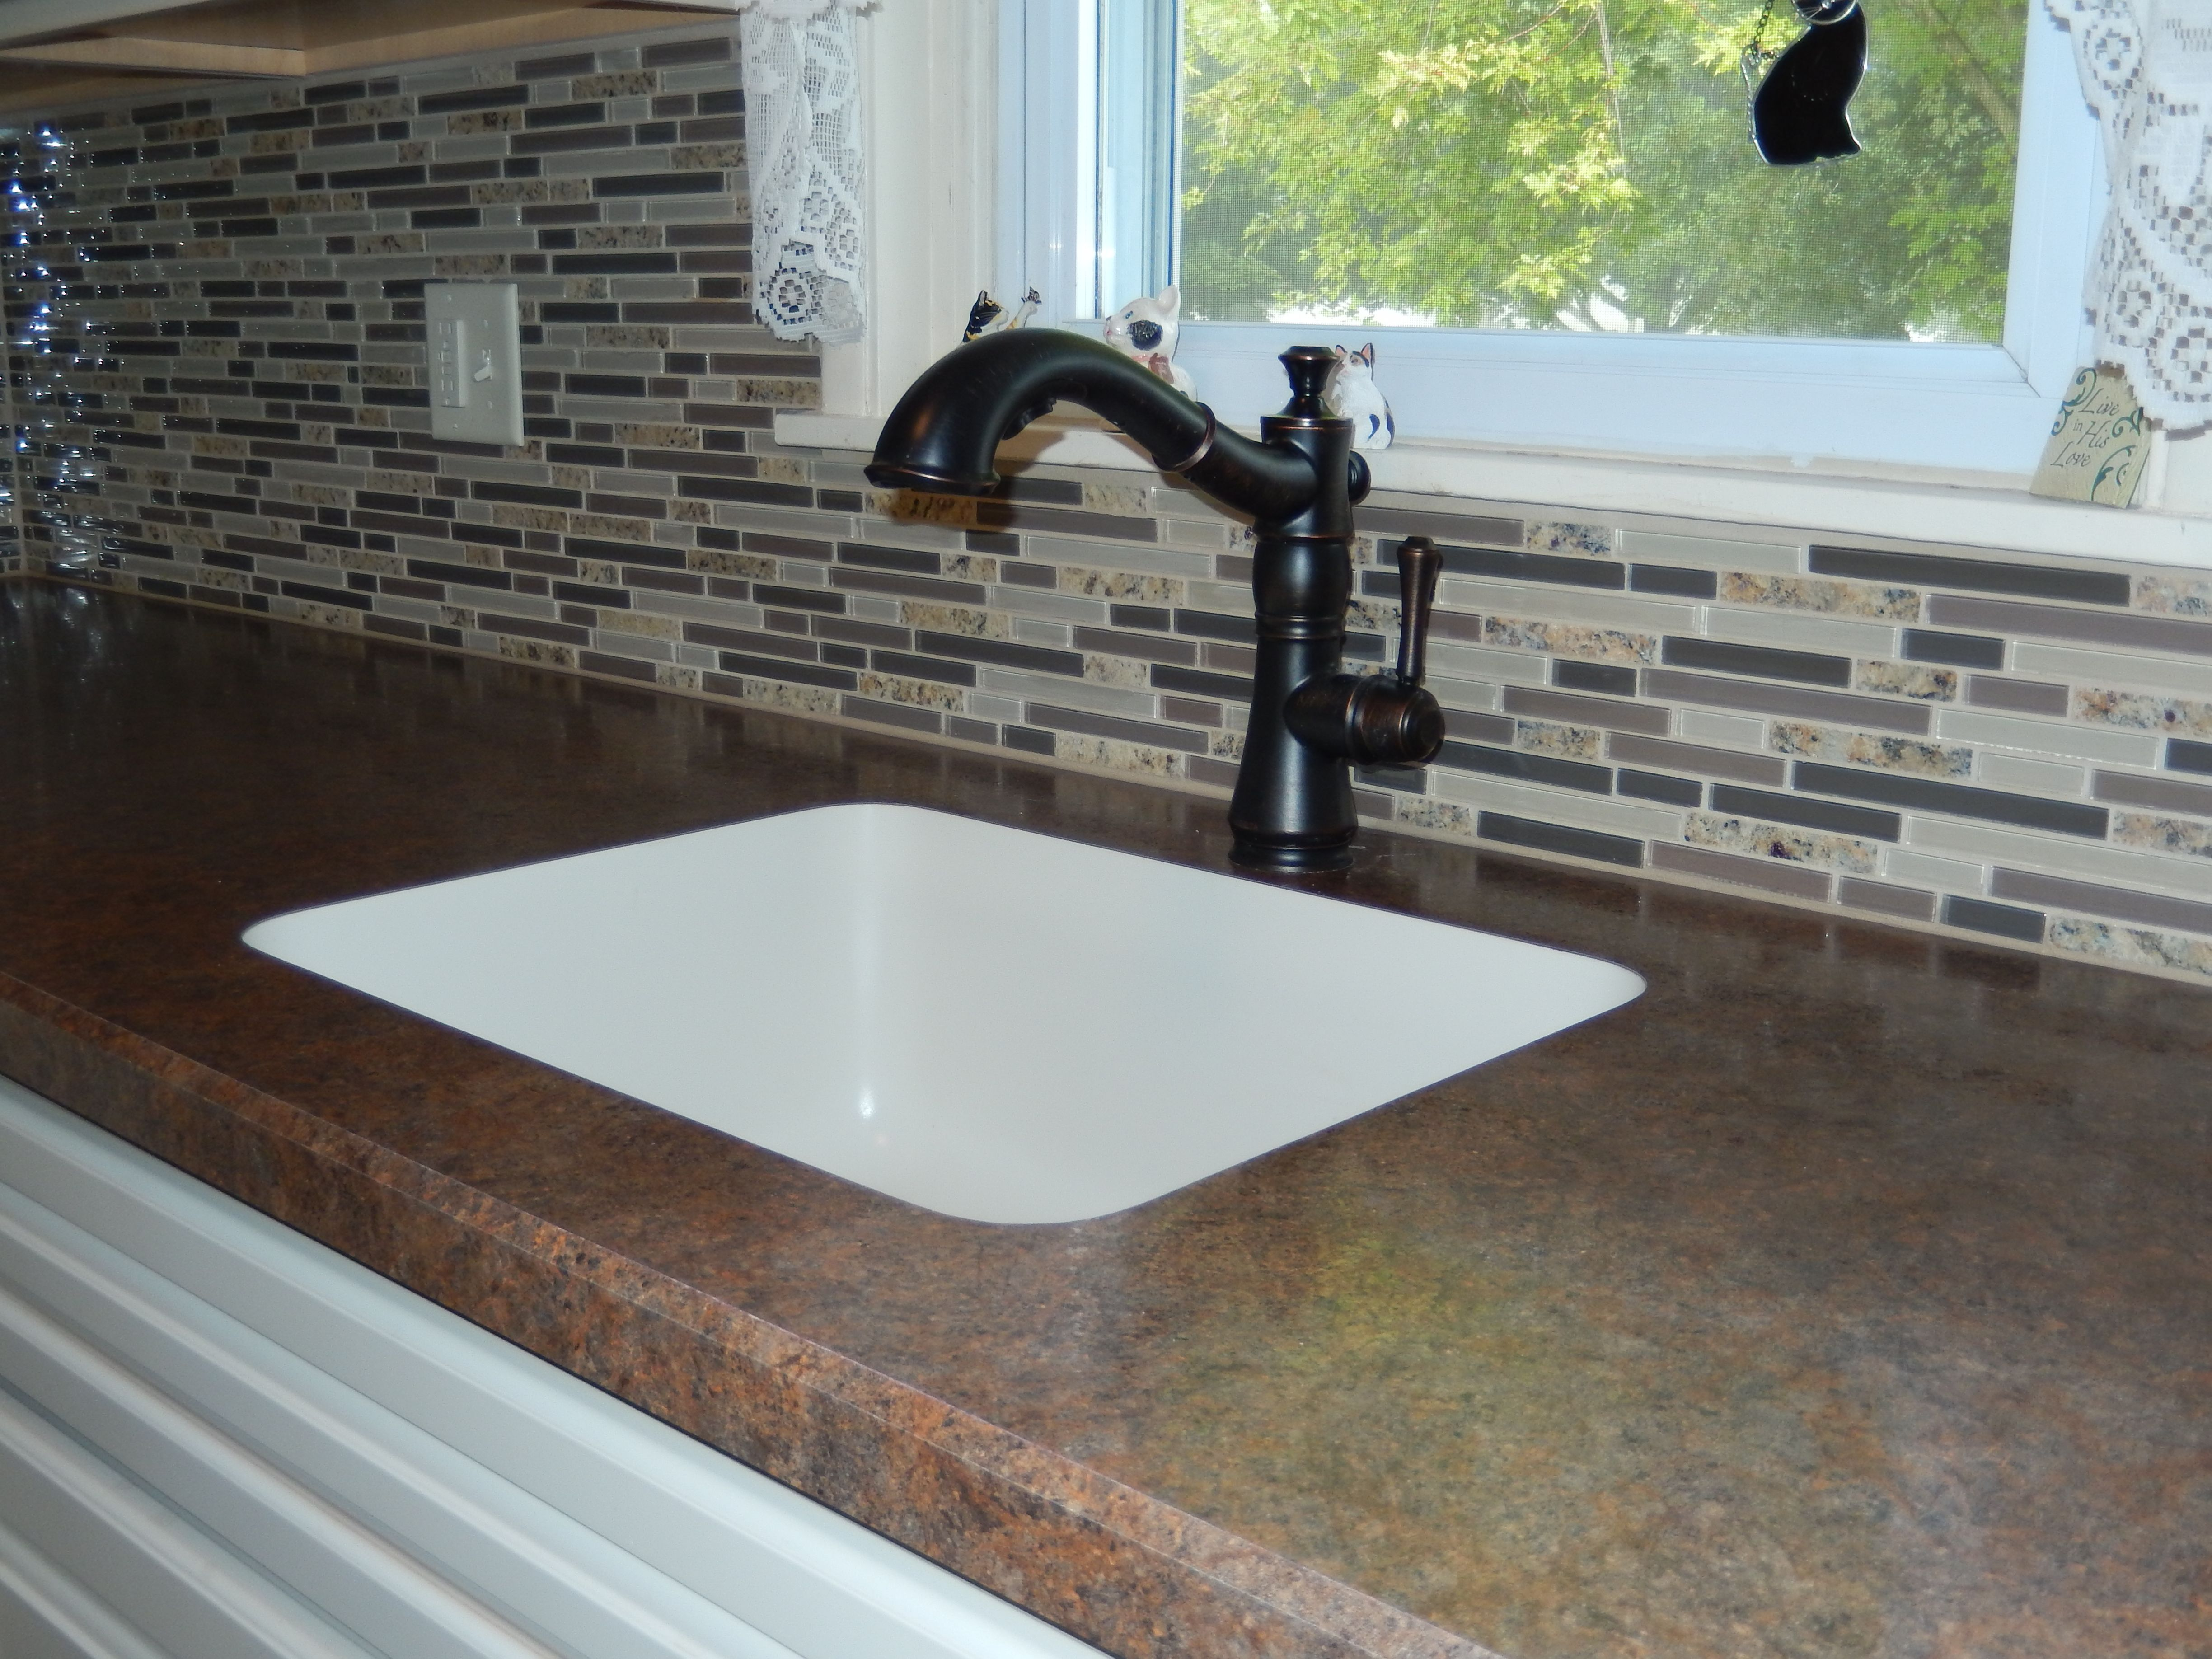 Wilsonart Laminate Counters, Karran Undermount Sink, Oil Rubbed Bronze  Faucet, Linear Mosaic Tiles